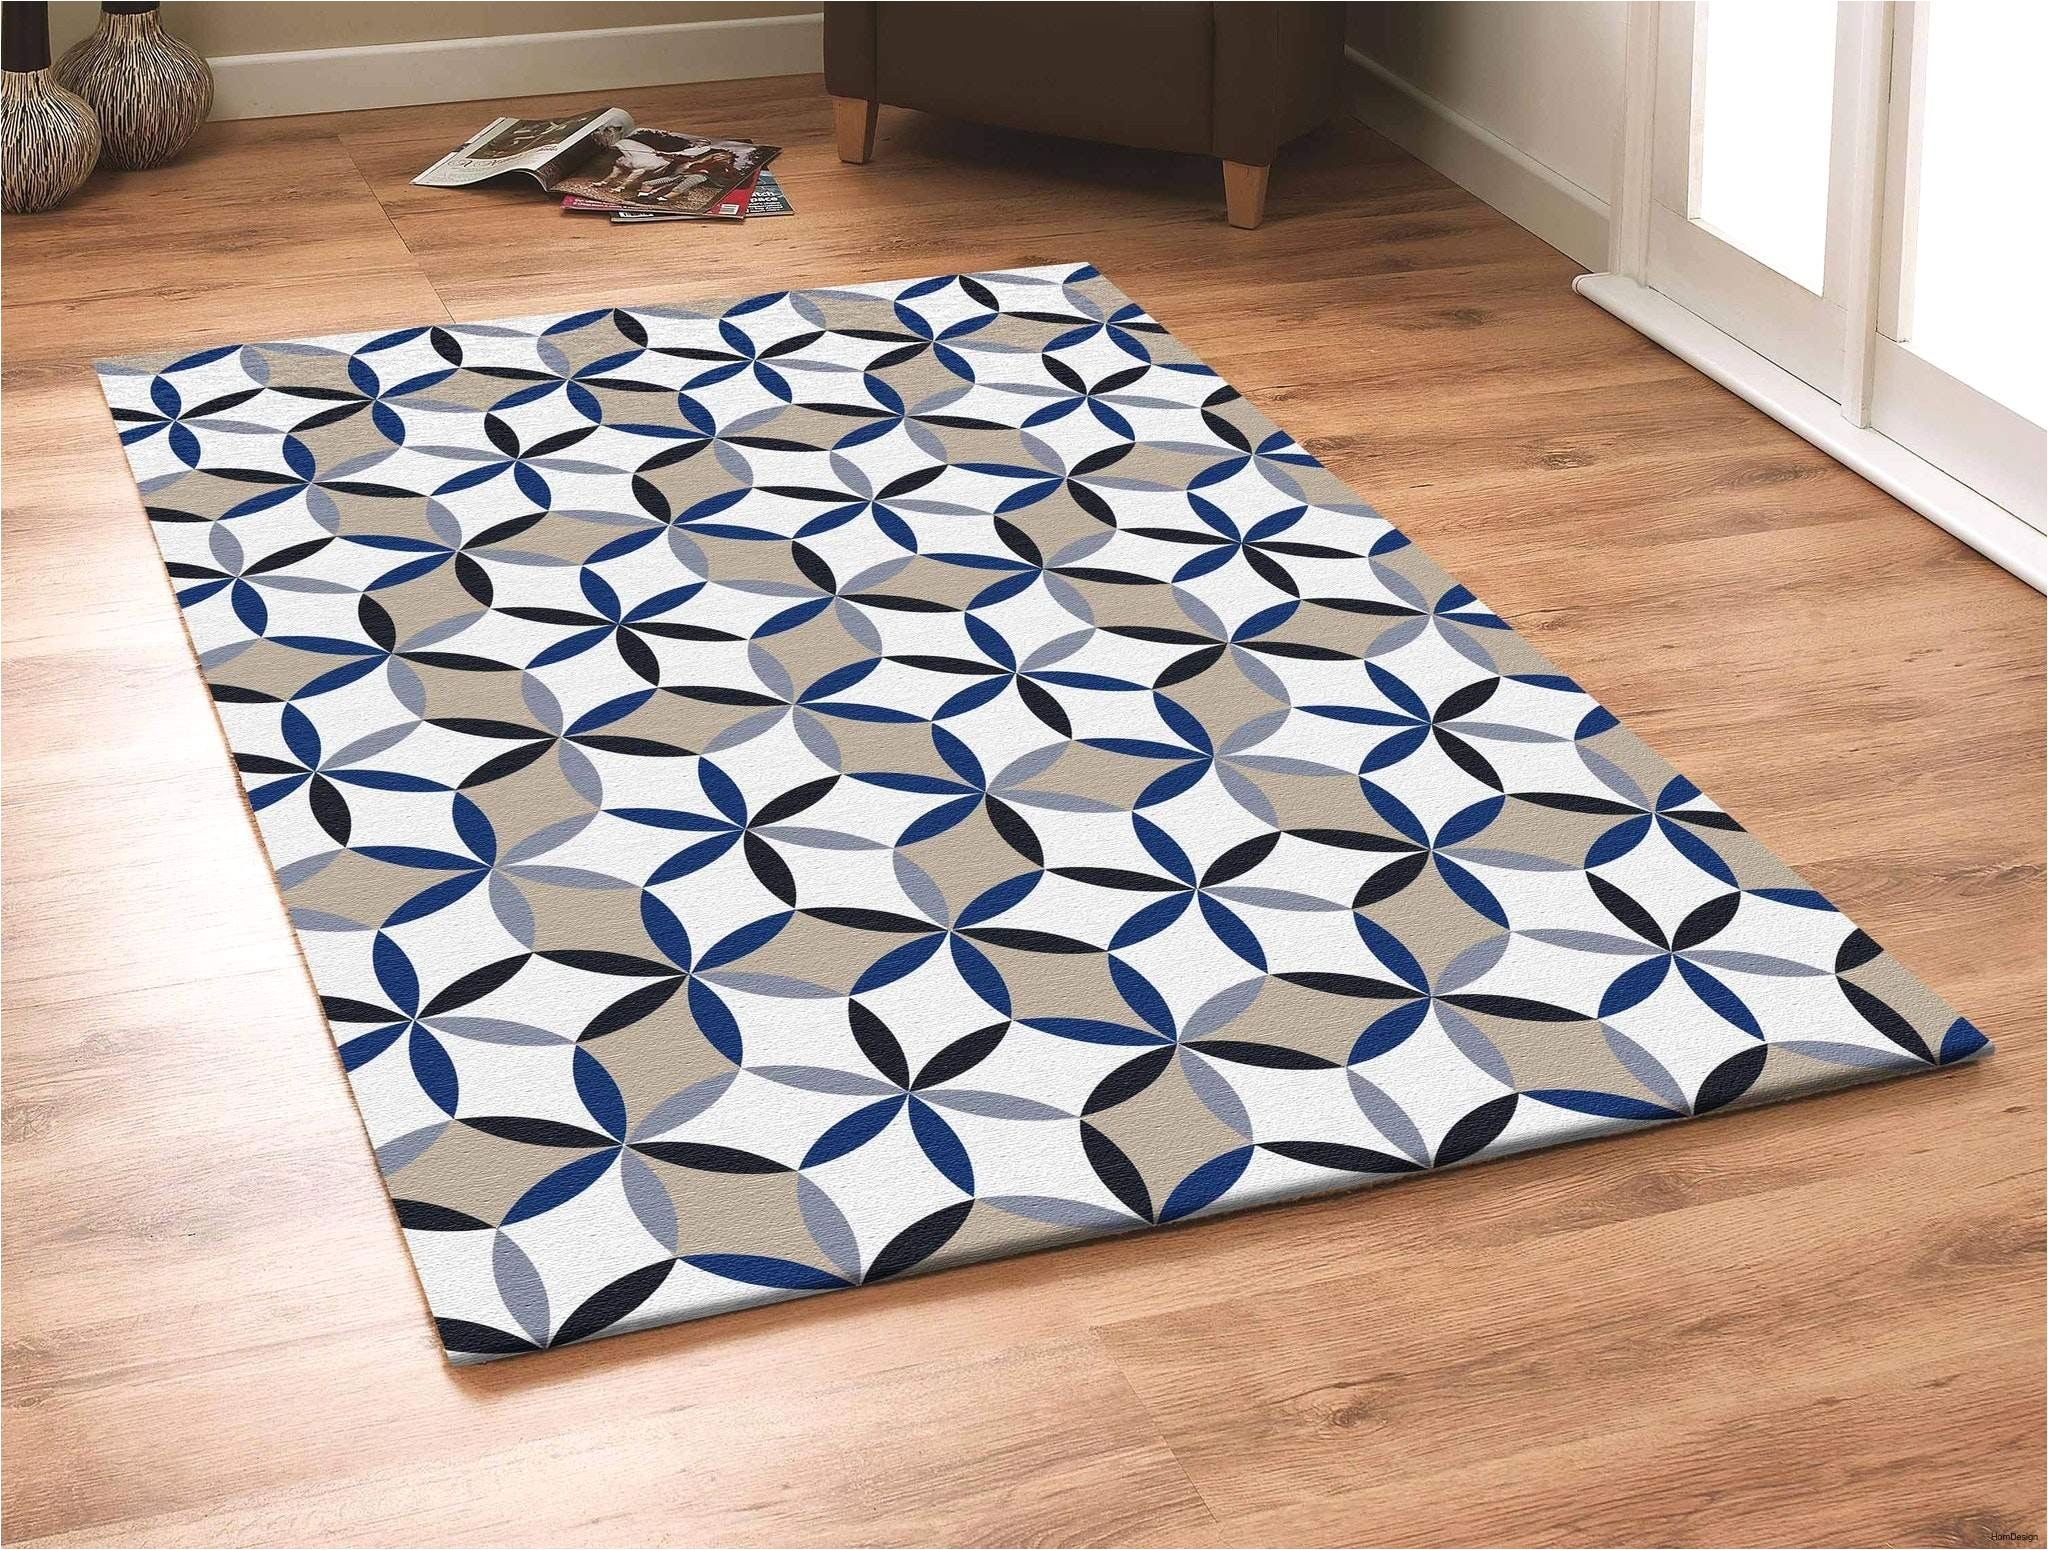 how to buy an area rug for living room beautiful 33 greatest black round area rugs